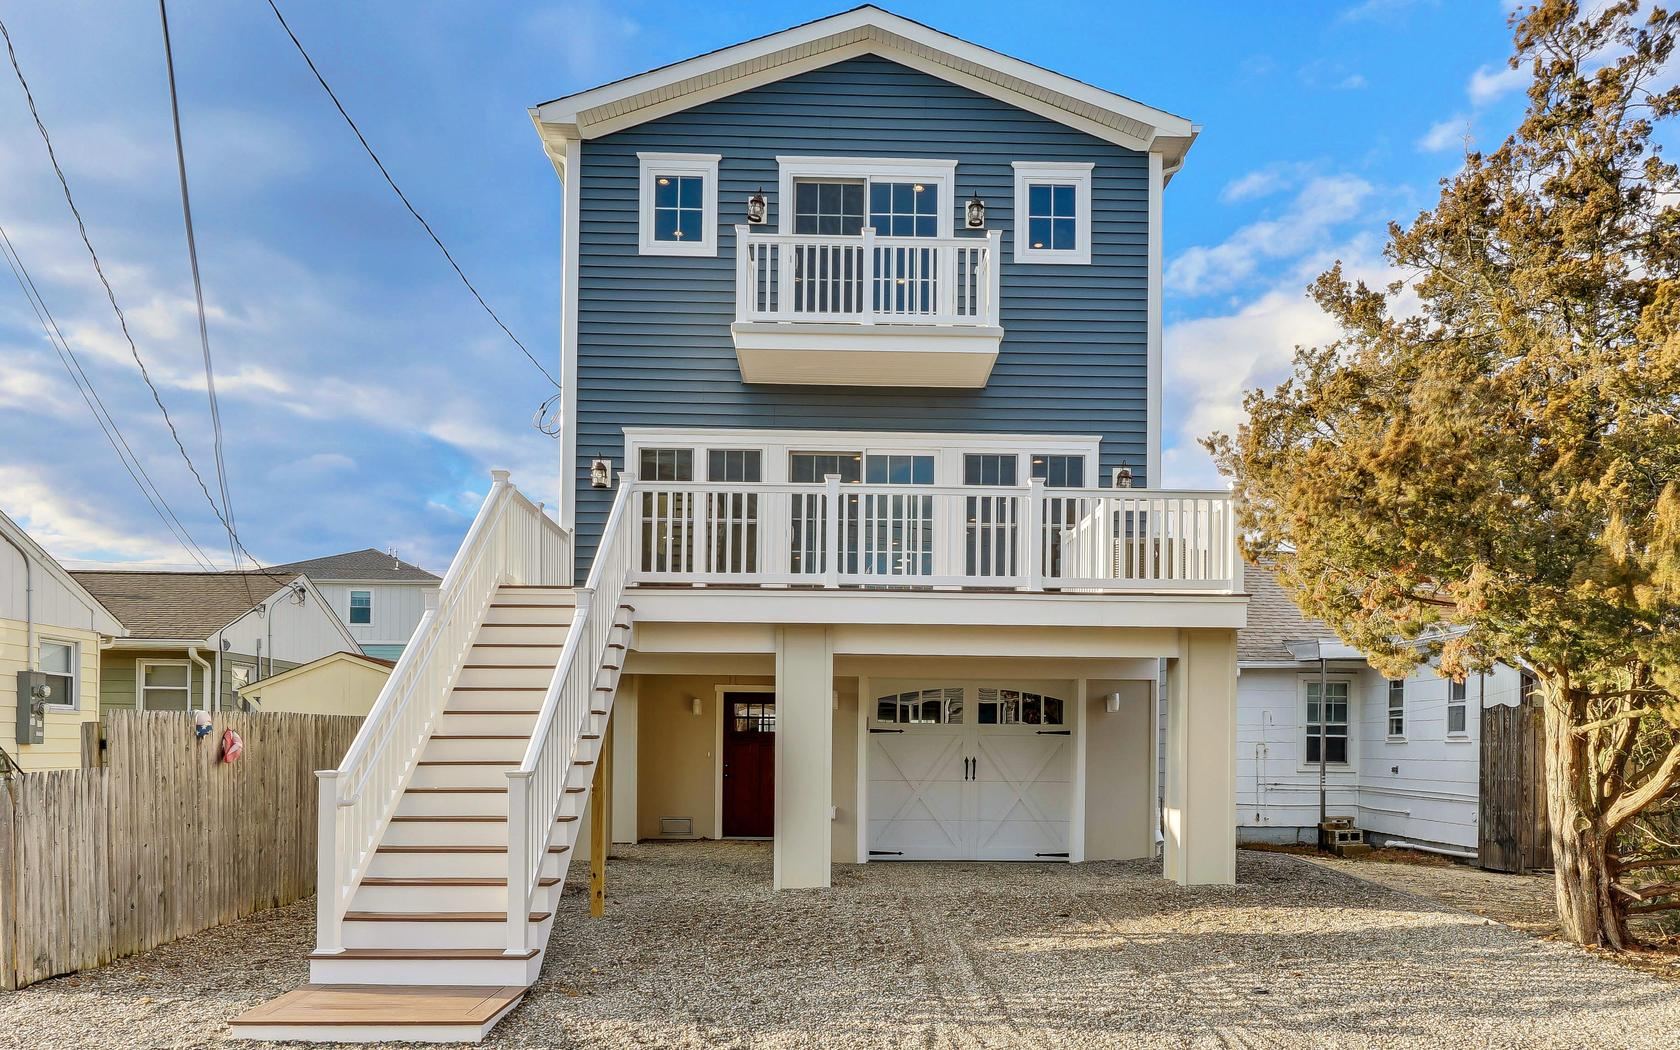 Villa per Vendita alle ore Meadow single family 8 Meadow Avenue Manasquan, New Jersey, 08736 Stati Uniti